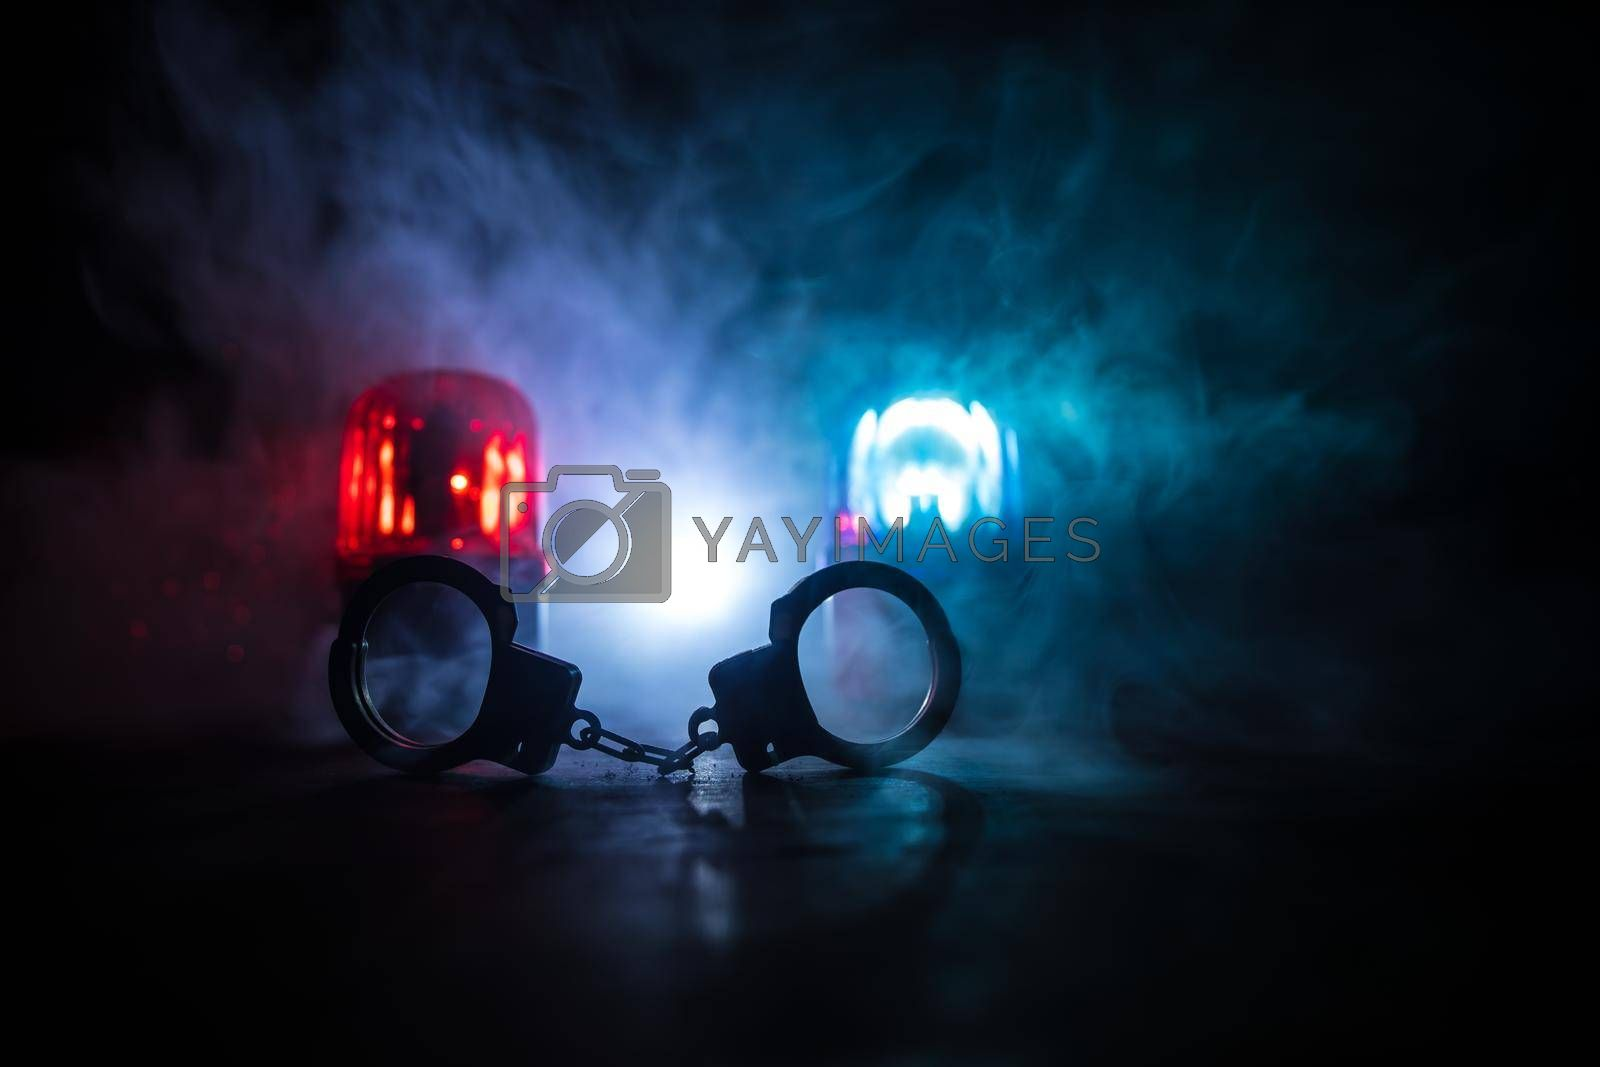 Police raid at night and you are under arrest concept. Silhouette of handcuffs with police car on backside. Image with the flashing red and blue police lights at foggy background. Selective focus